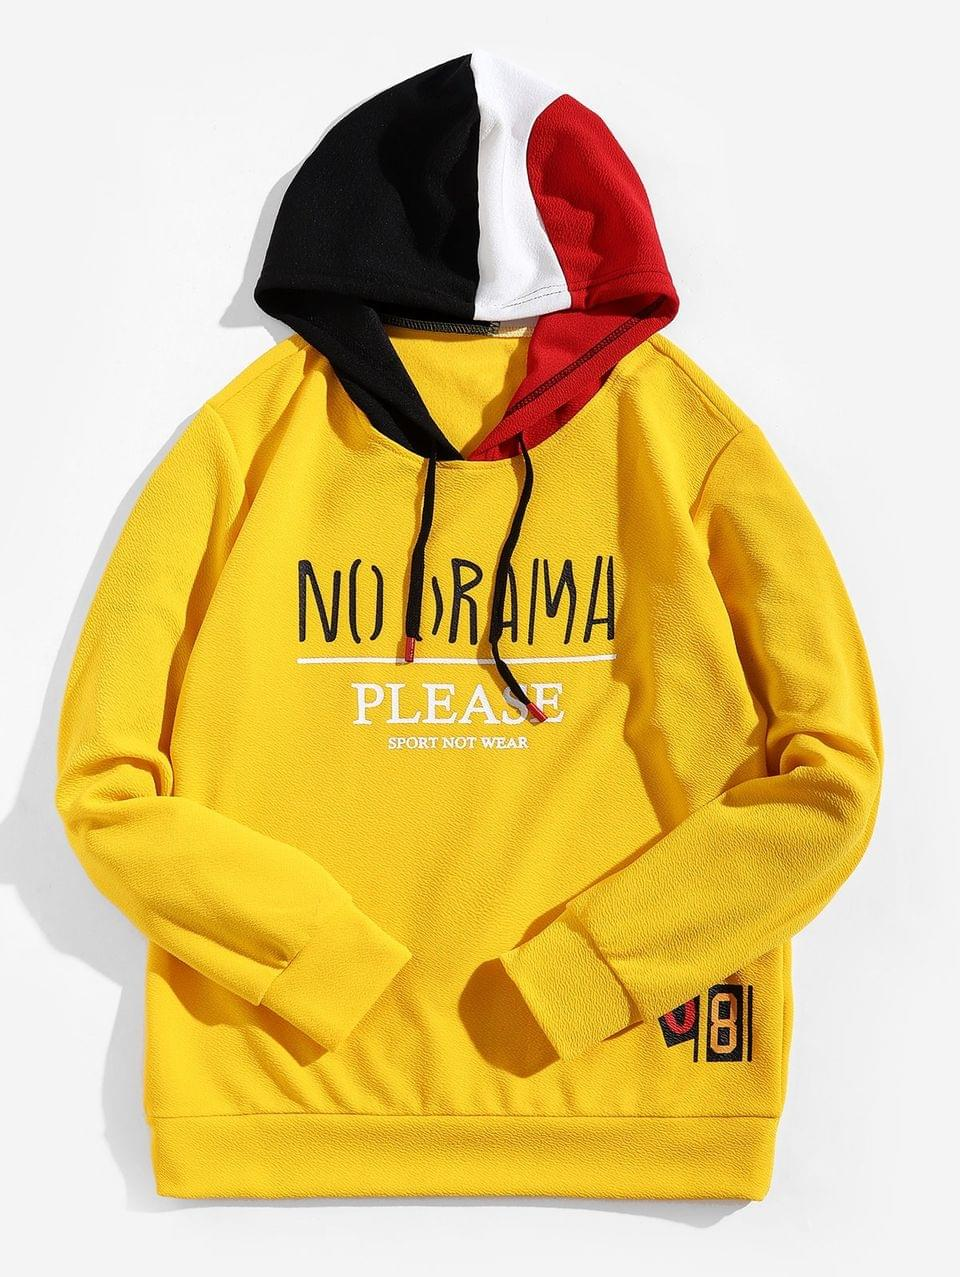 Men's Letter Graphic Color-blocking Spliced Hoodie - Yellow Xs